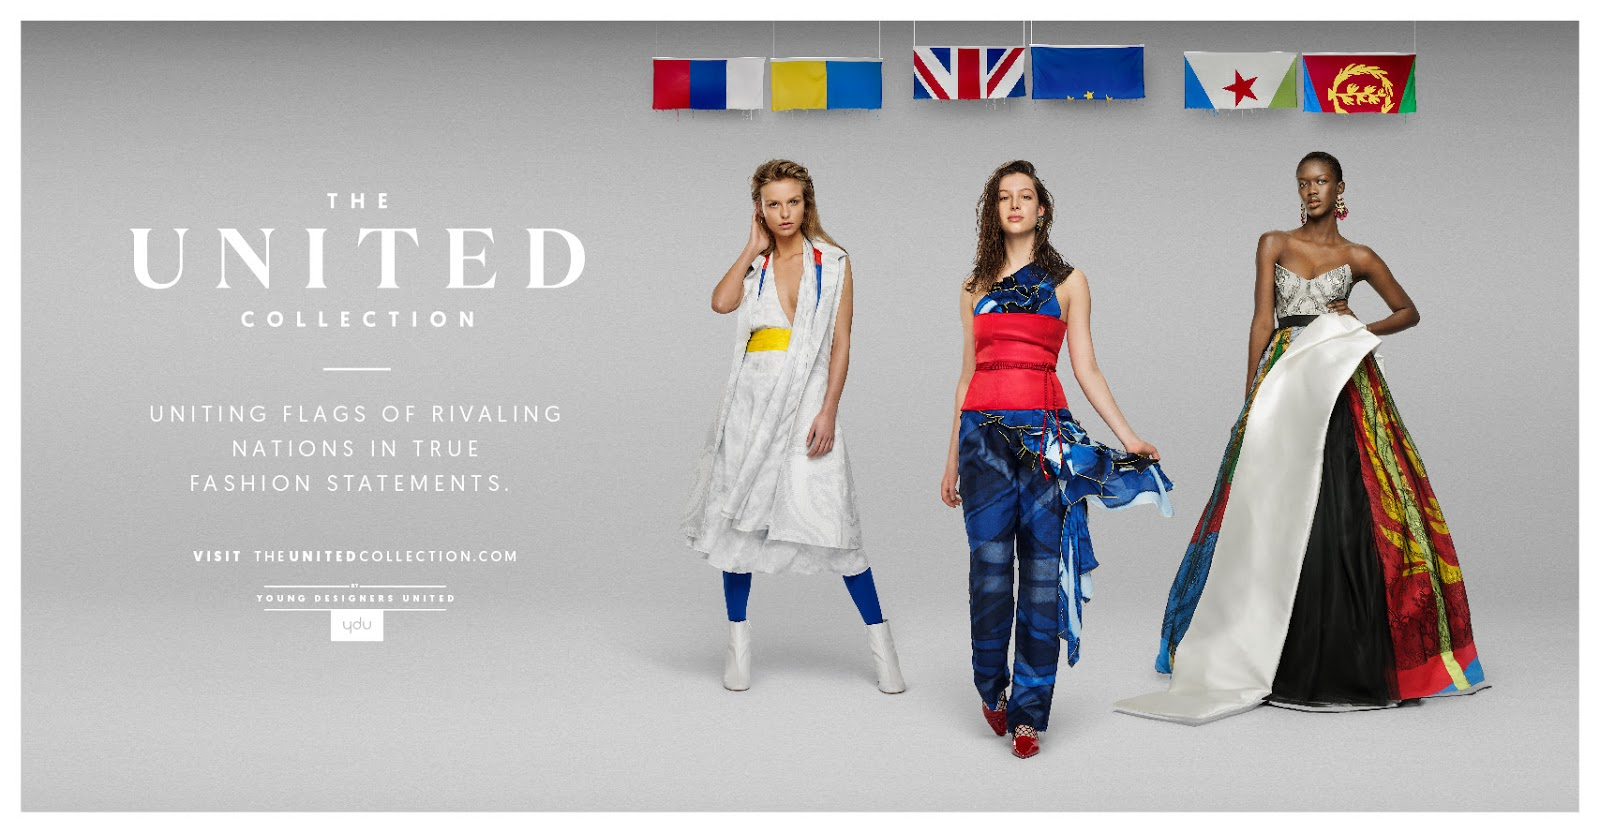 6015a4b5855 Introducing  The United Collection  - Fashion Made from Flags of Opposing  Nations